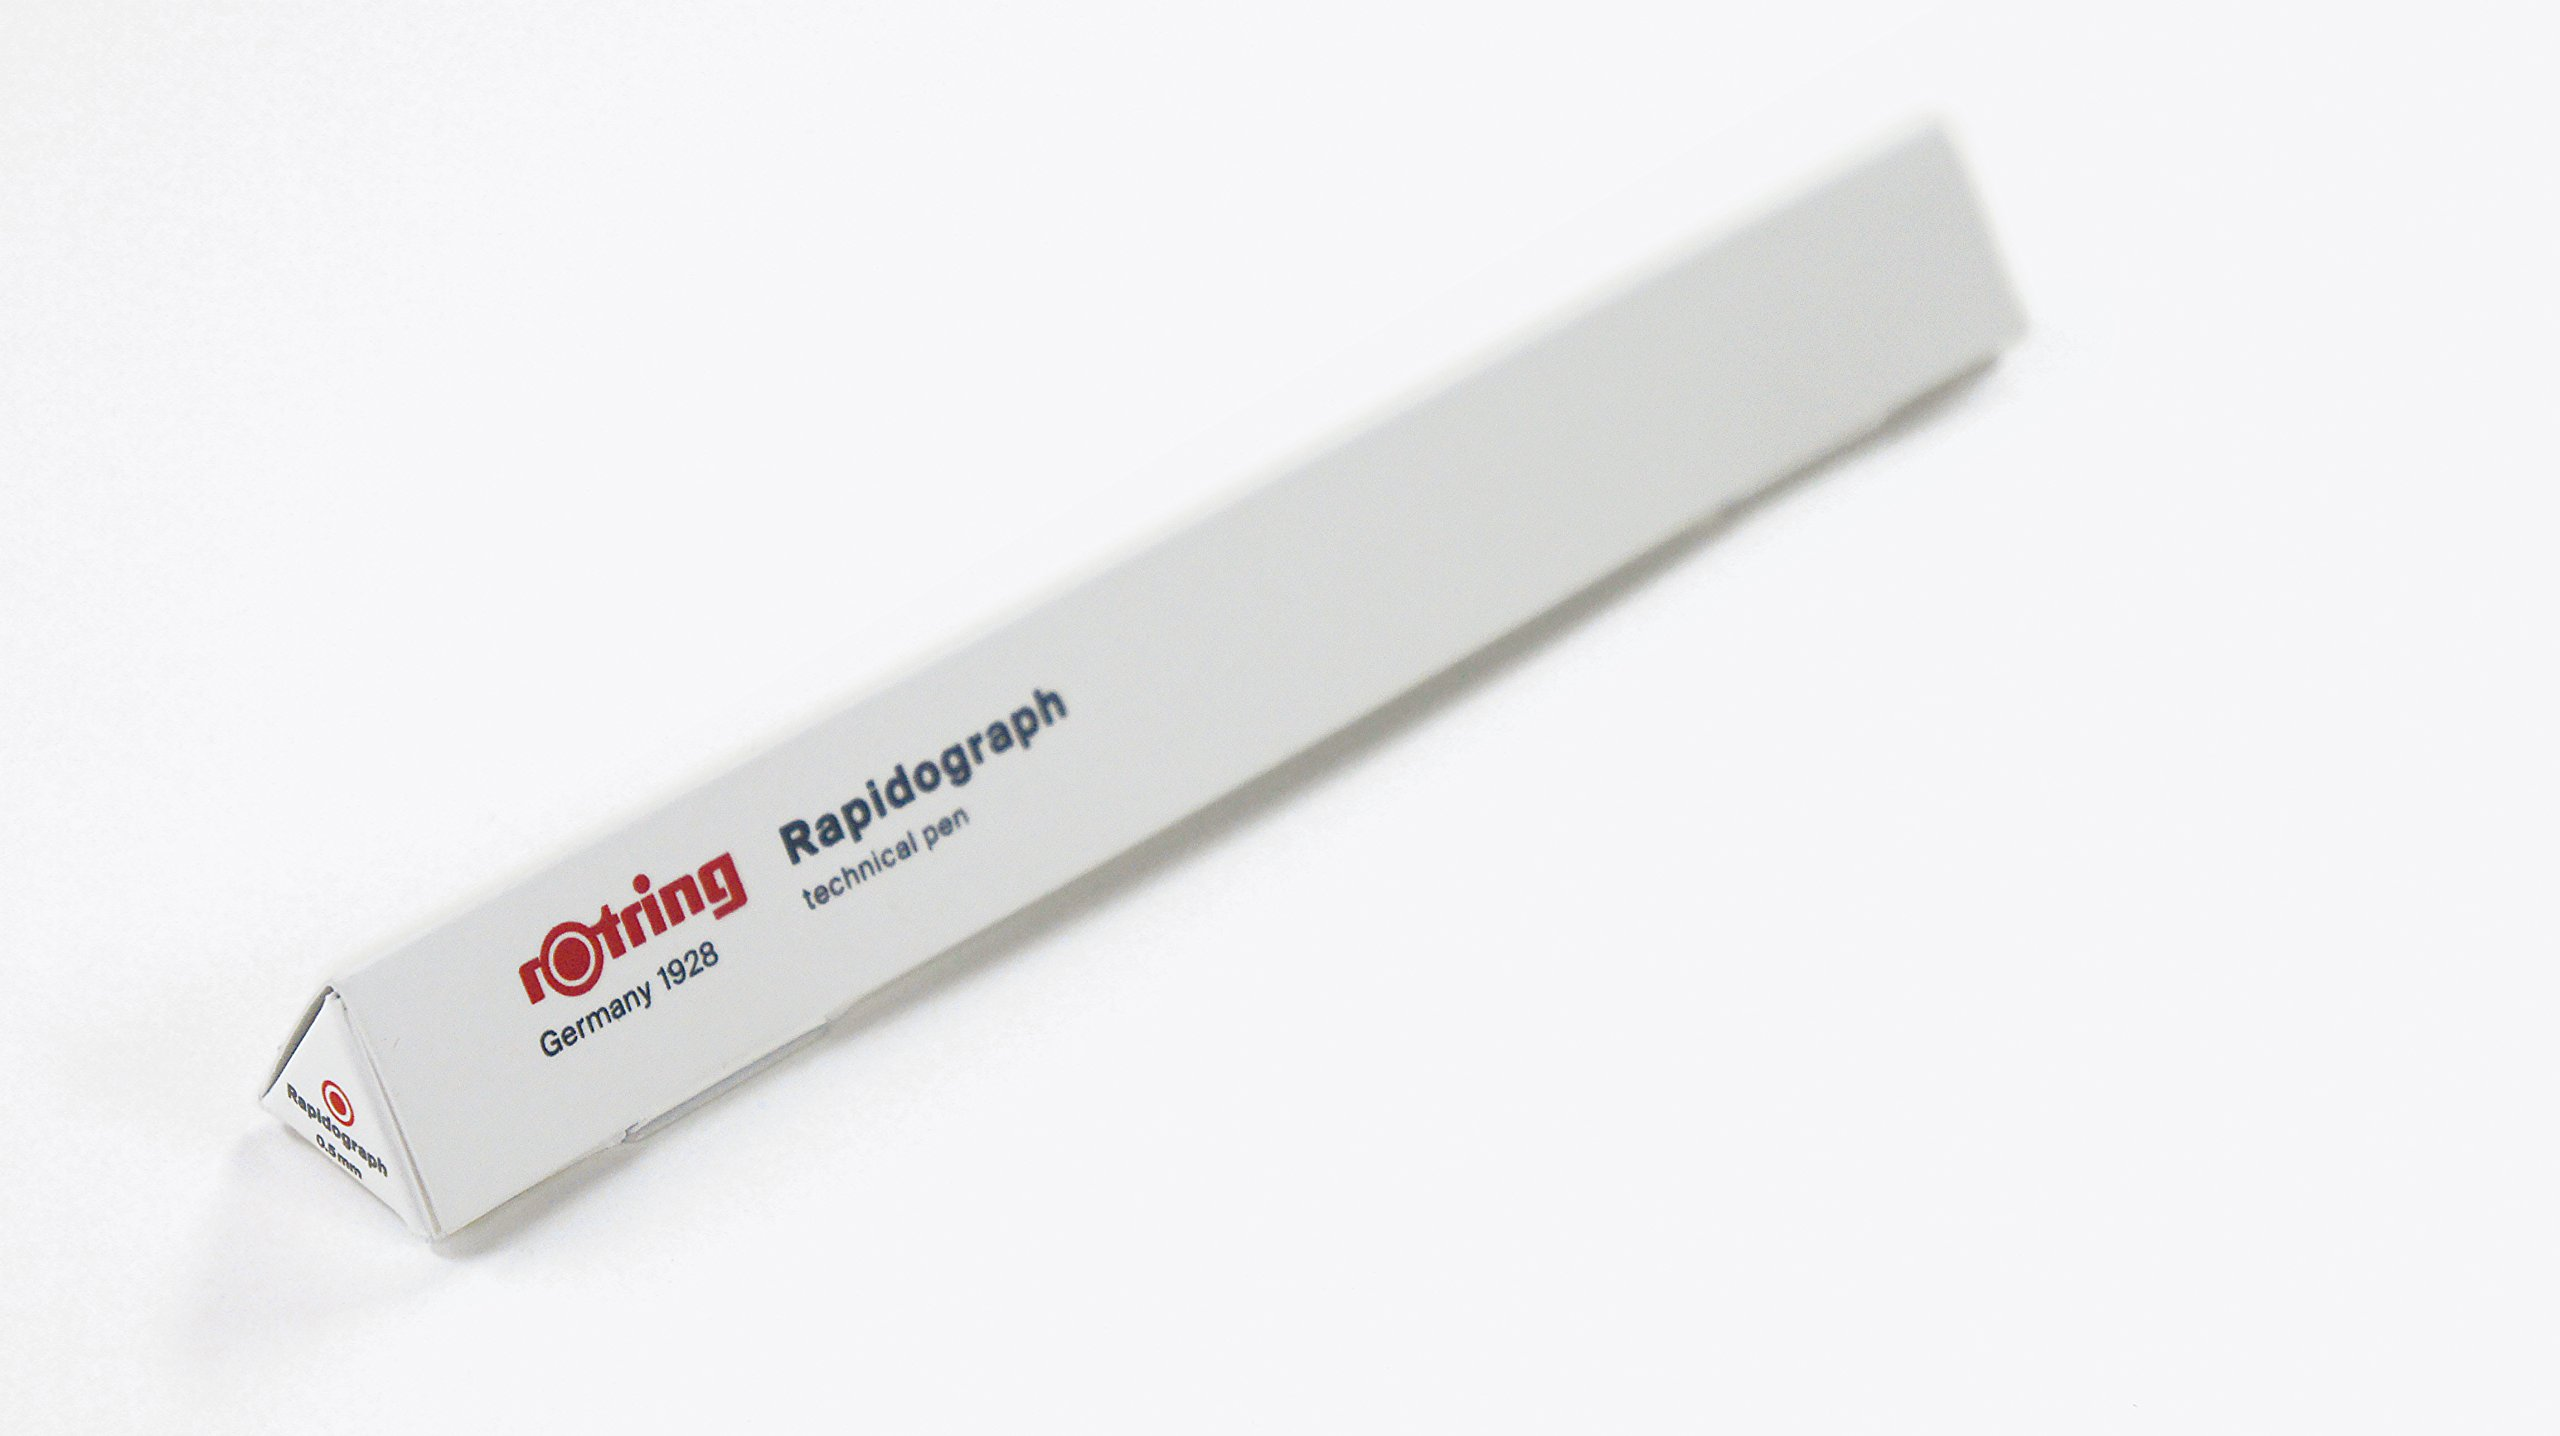 Rotring 0.8mm Isograph Technical Pen - Gift Boxed by Rotring (Image #2)